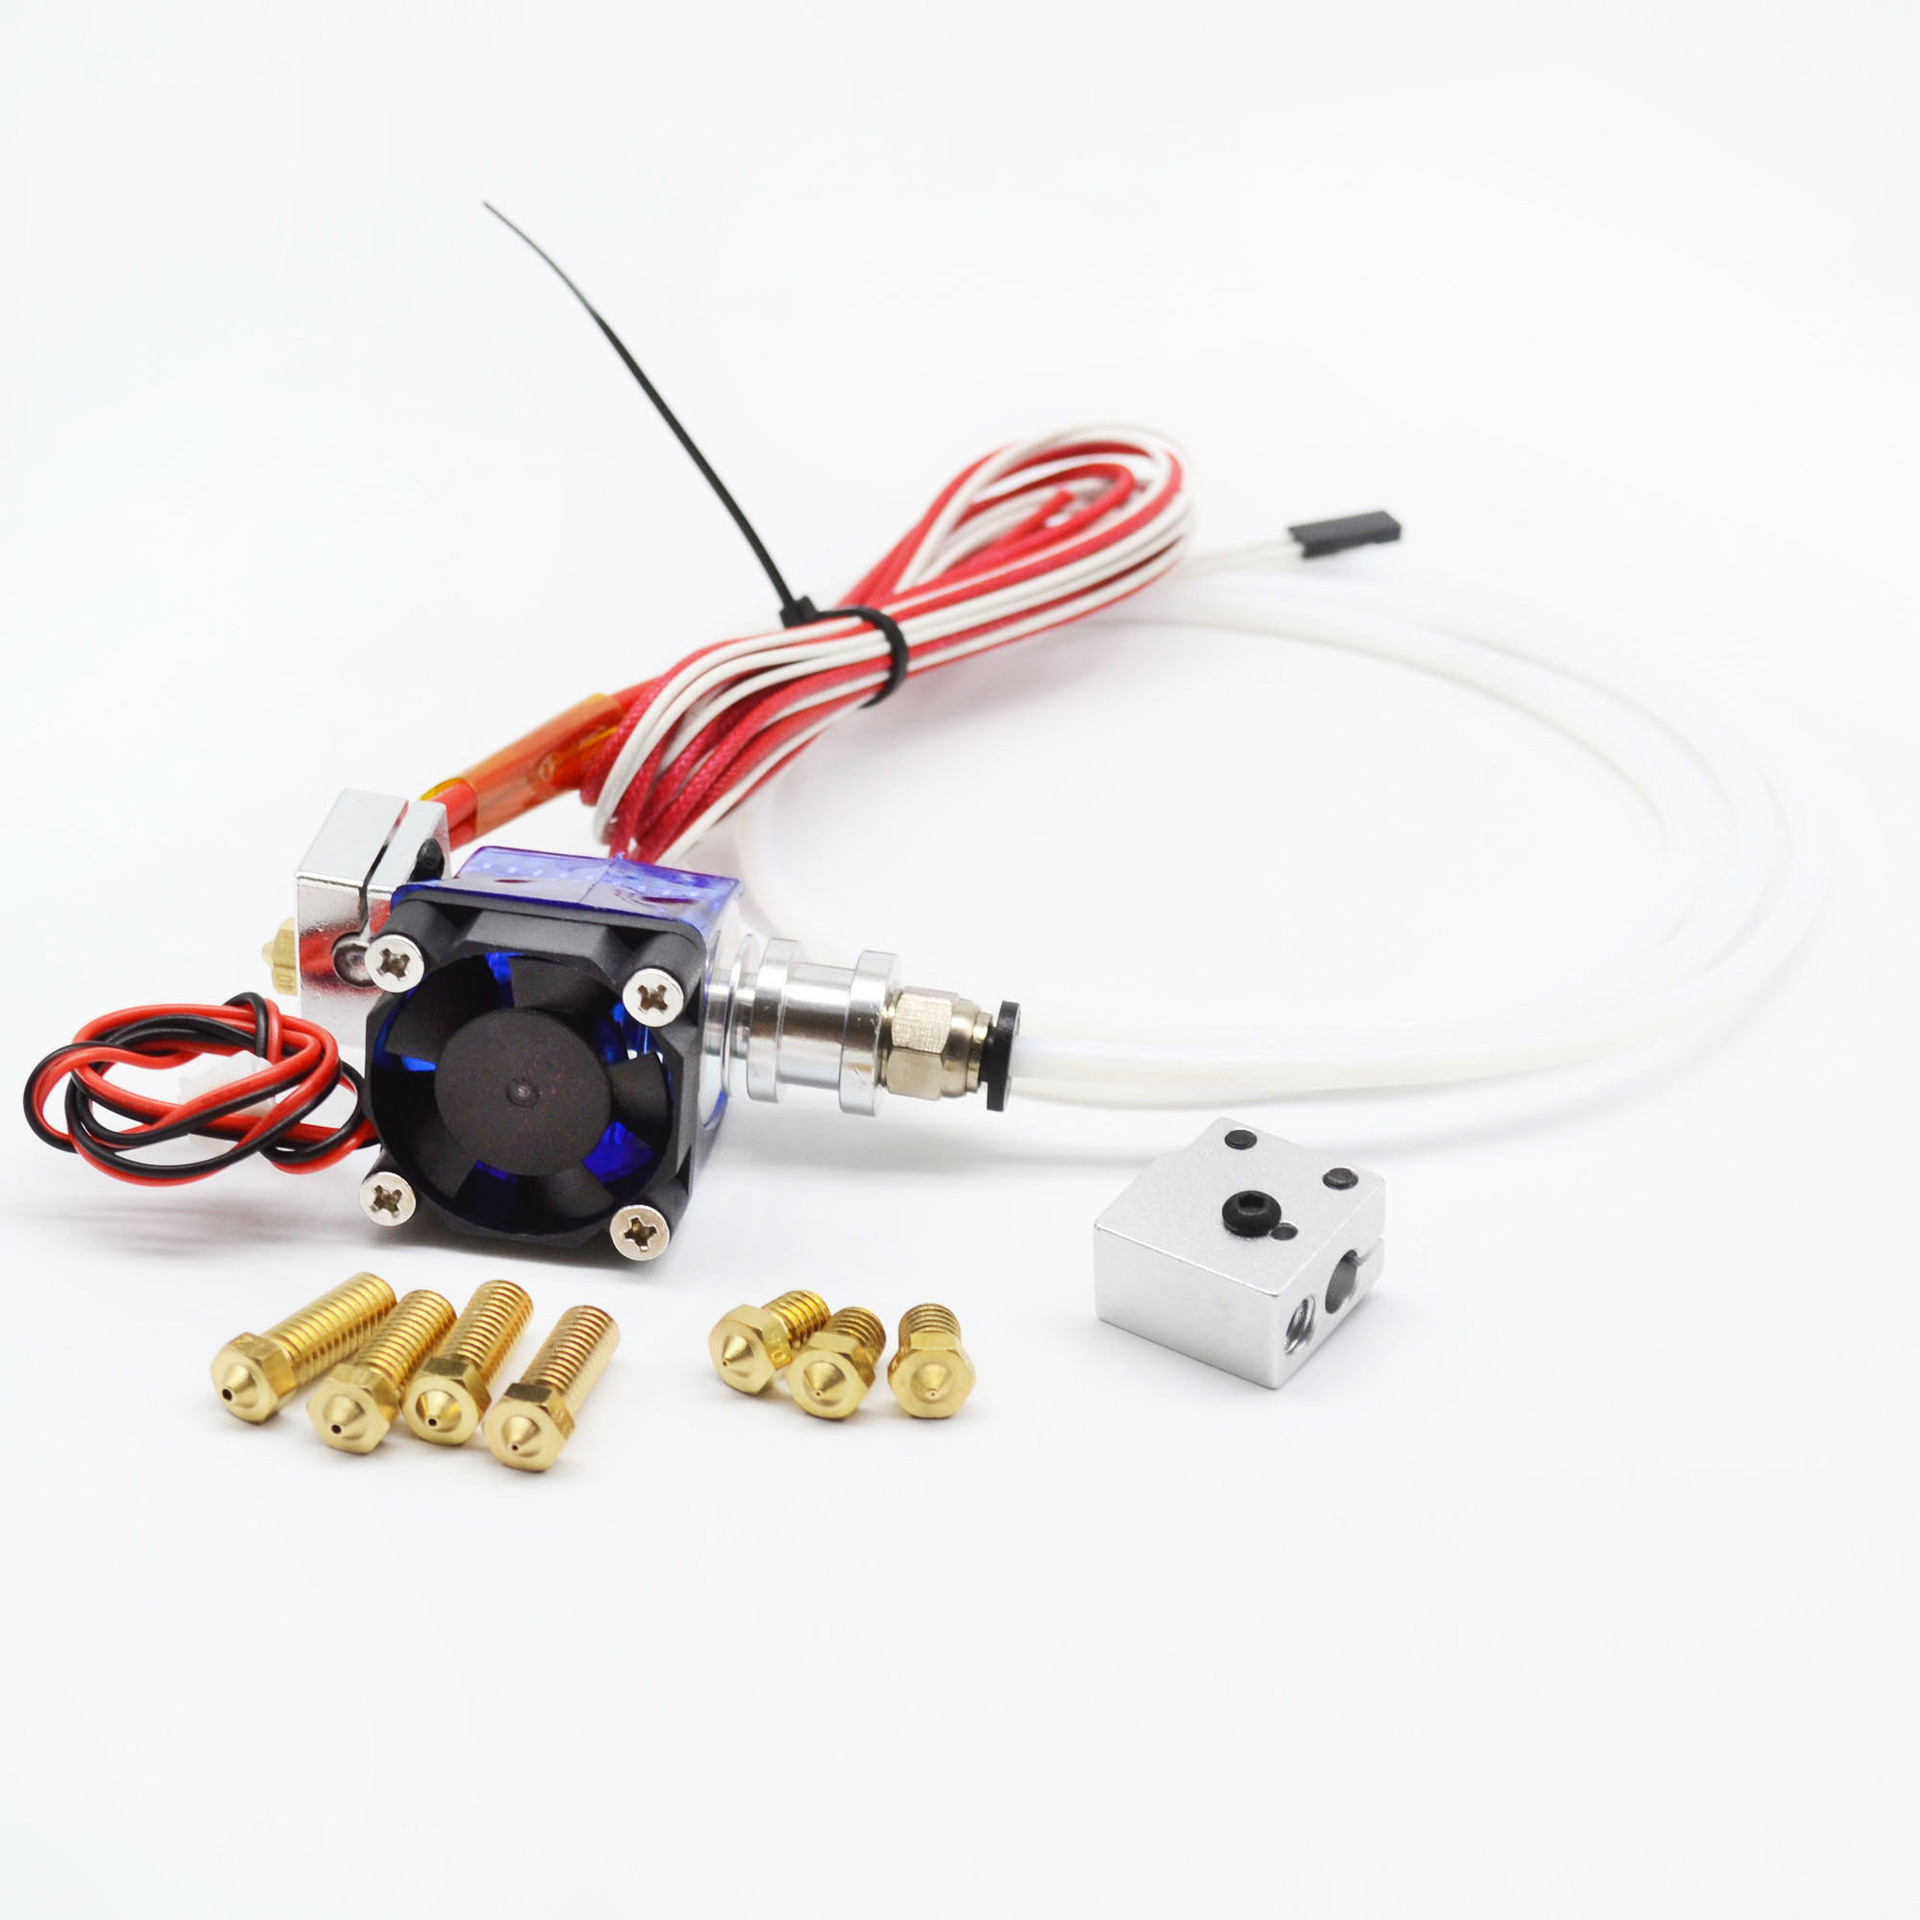 3D printer Bowden e3d V6 remote J-head Hotend print head extruder with Cooling Fan heat block Teflon tube V6 Volcano+Nozzle Kit tronxy v6 bowden extruder print j head hotend with teflon tube and cooling heat for 3d printer